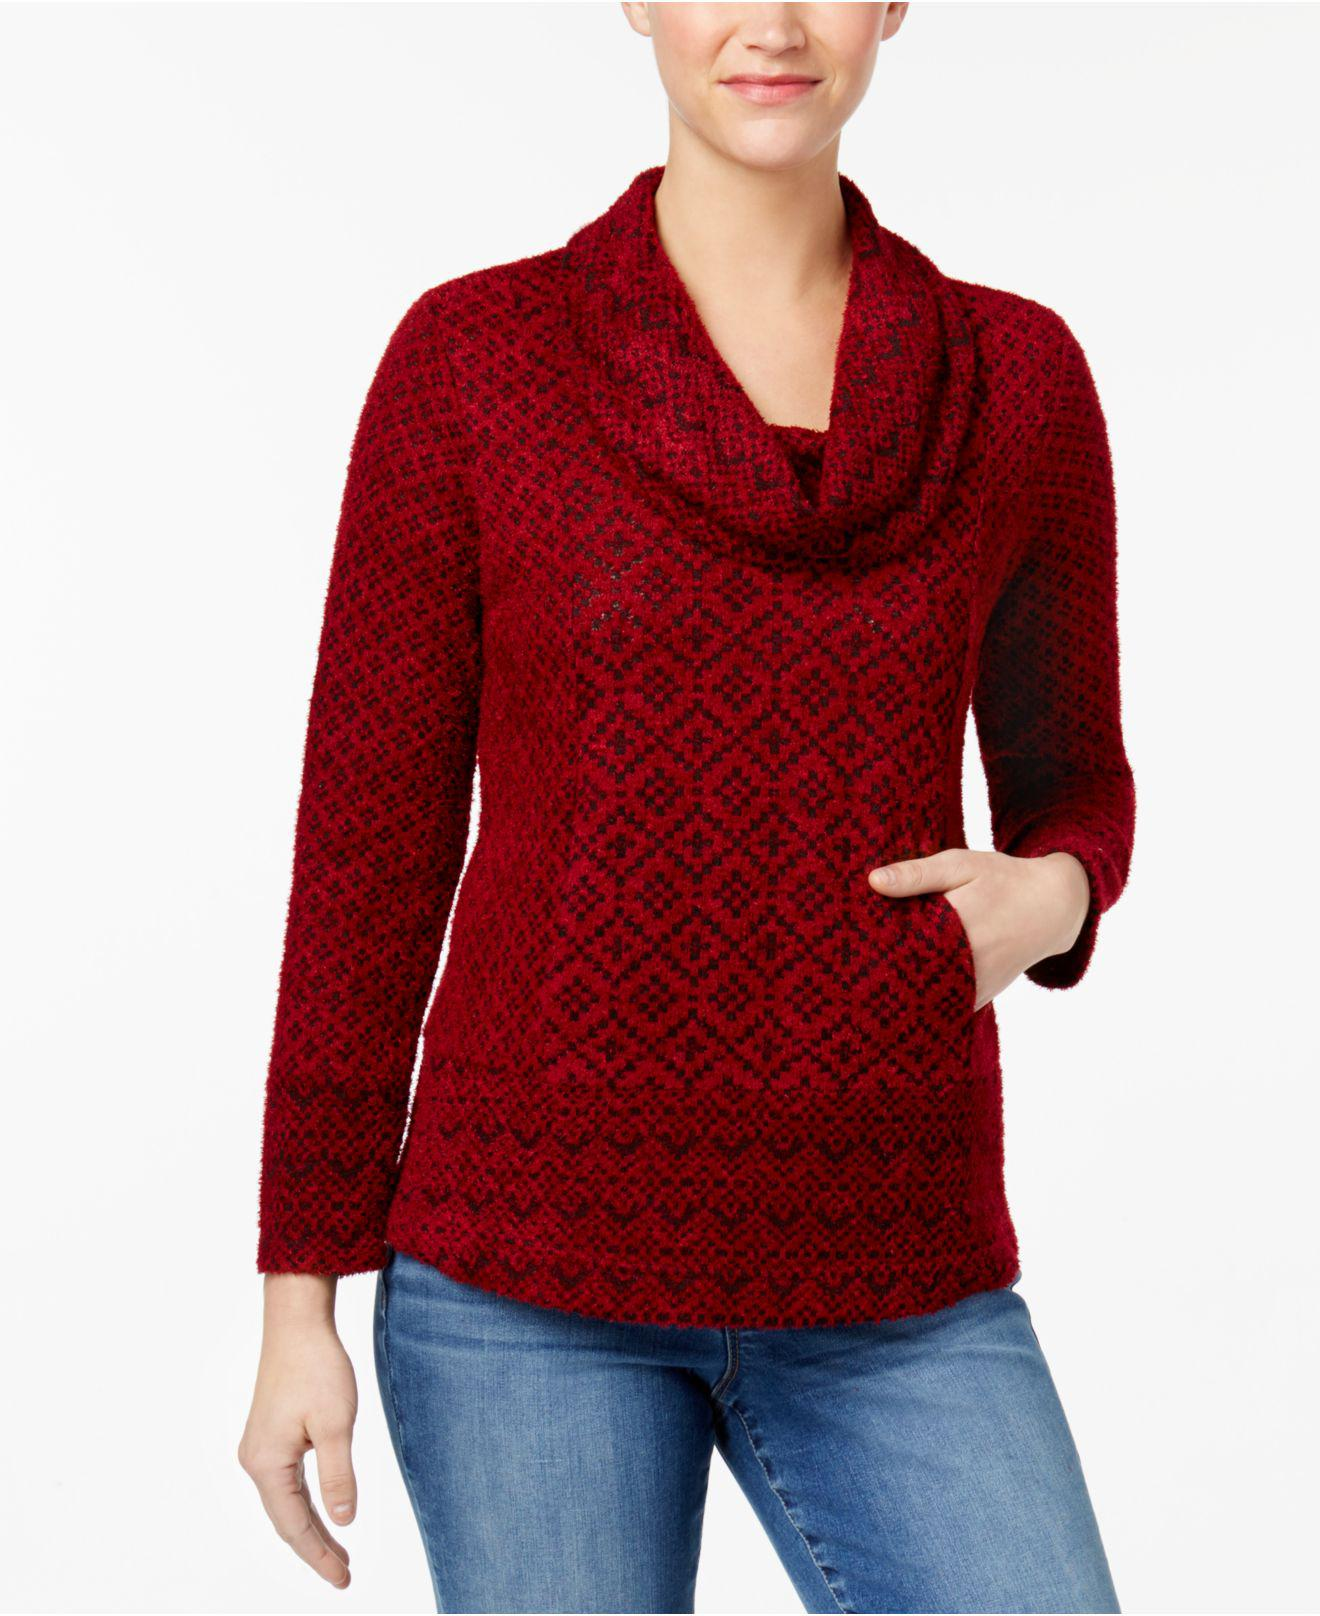 Style & co. Petite Printed Cowl-neck Sweater in Red | Lyst